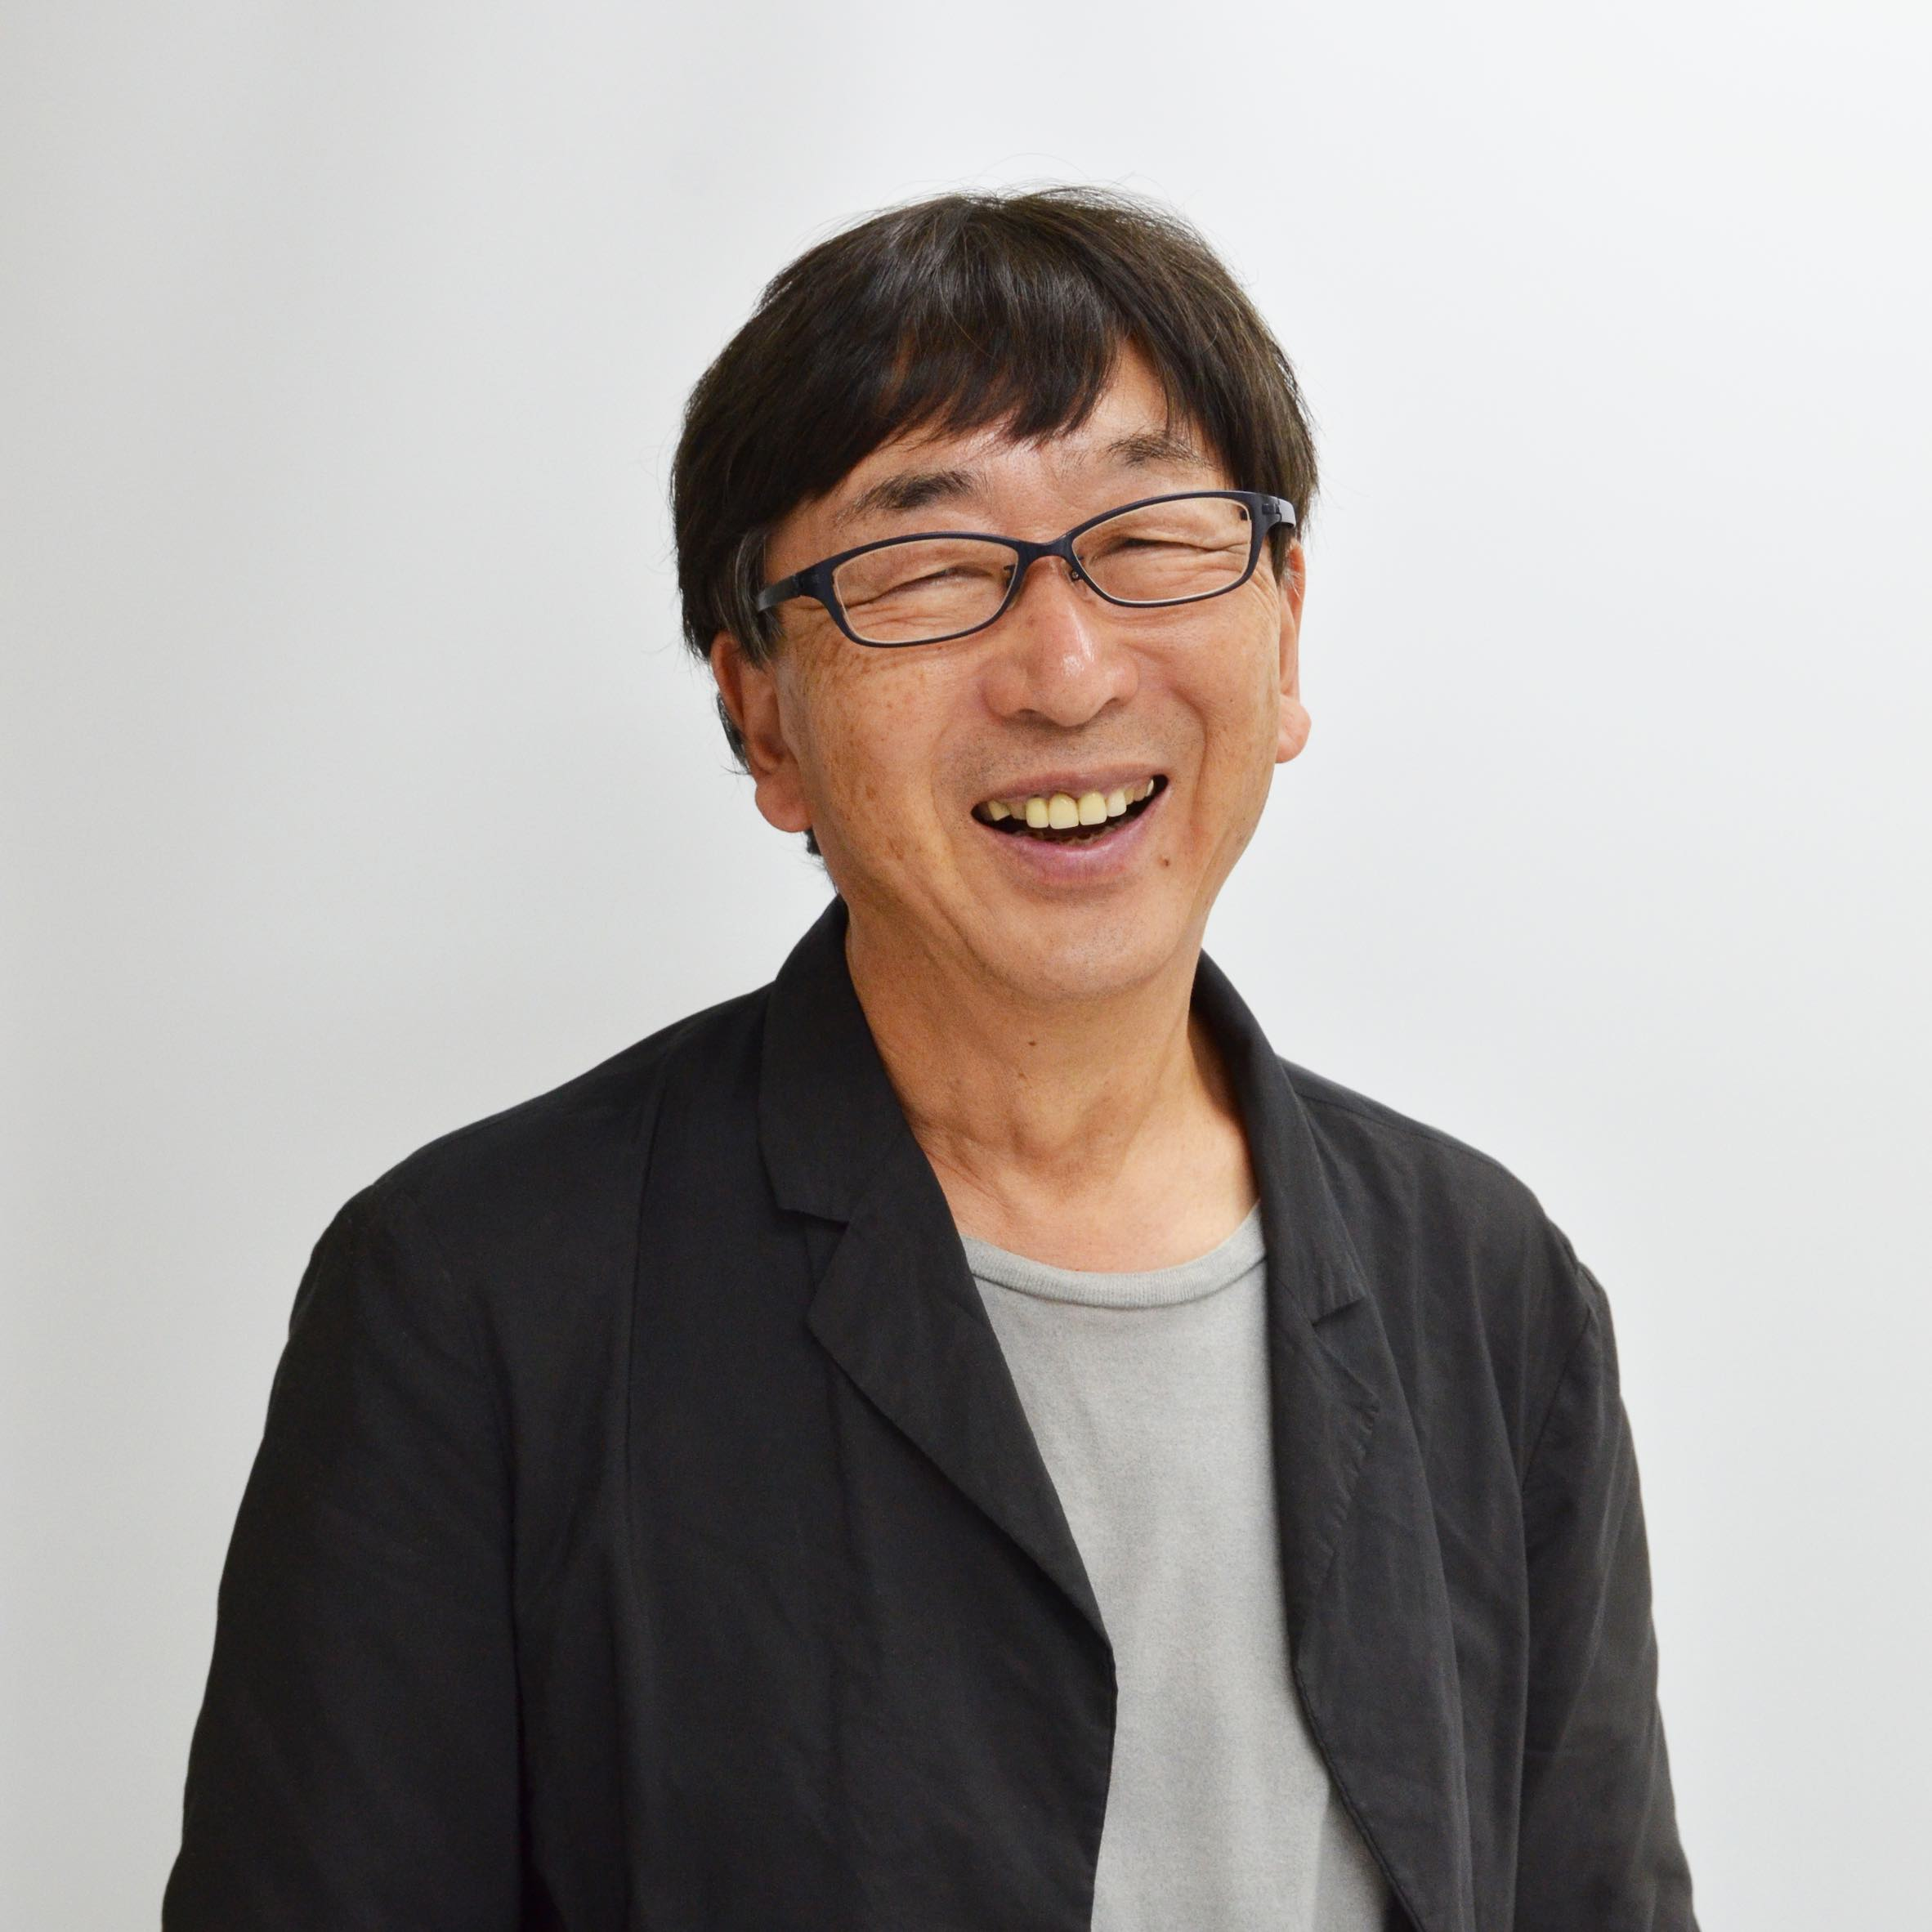 Toyo Ito and Ron Arad headline Business of Design Week 2018 in Hong Kong